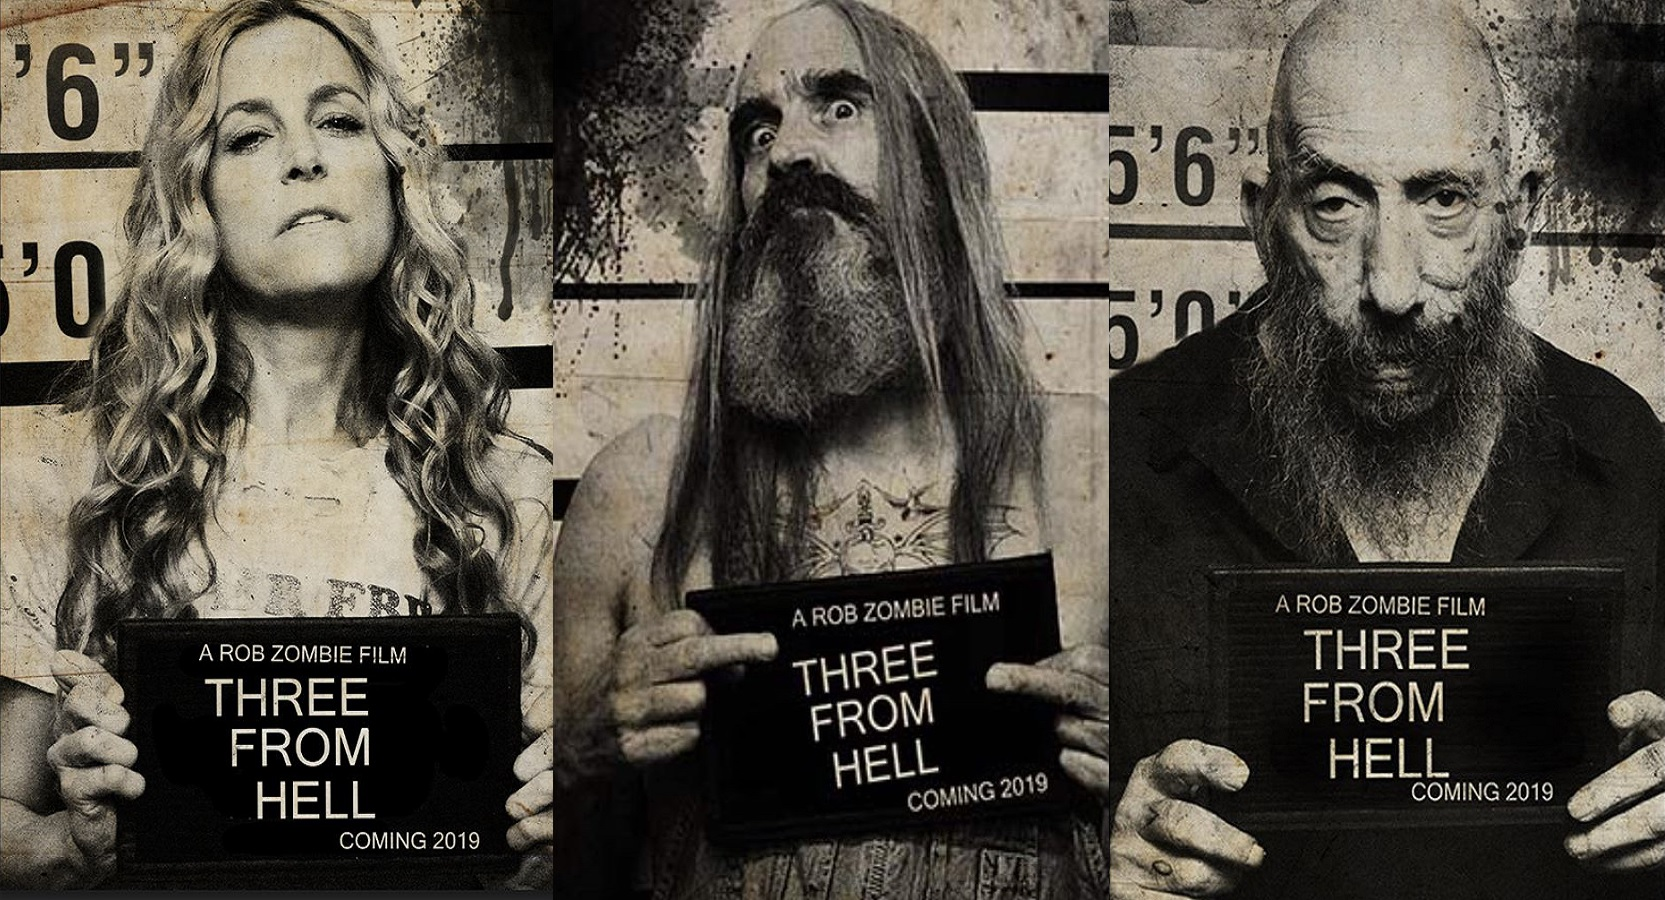 The Firefly family is back to raise hell in Rob Zombie's teaser trailer for 3 From Hell.